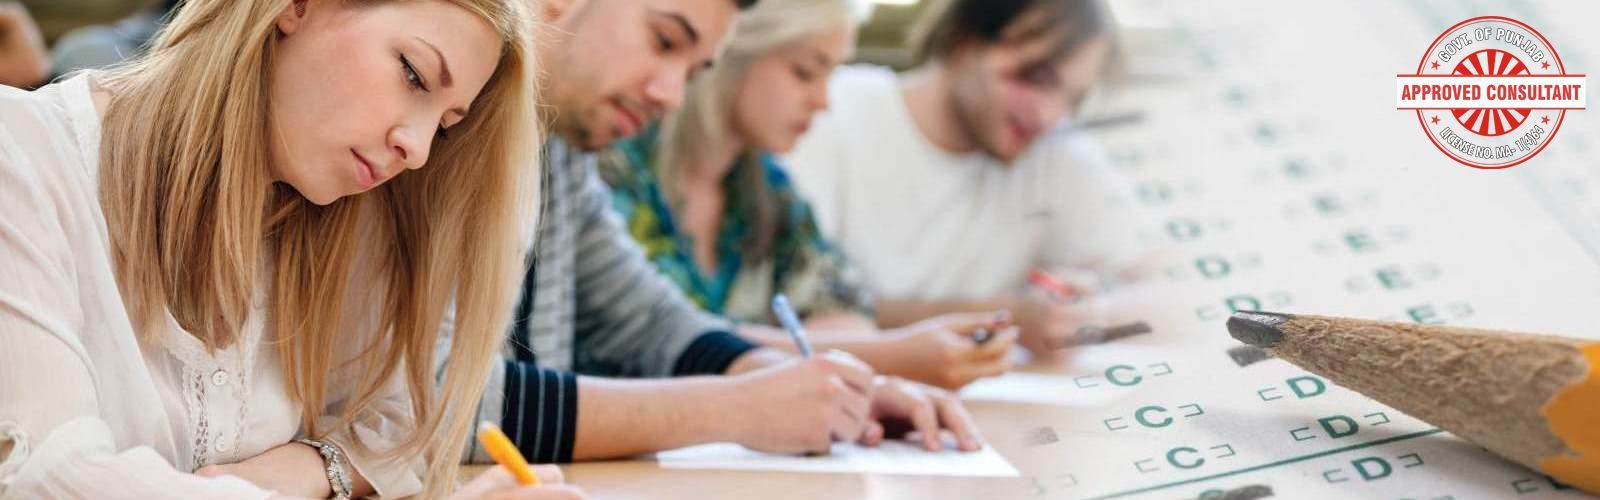 Overseas Education Consultants In Amritsar